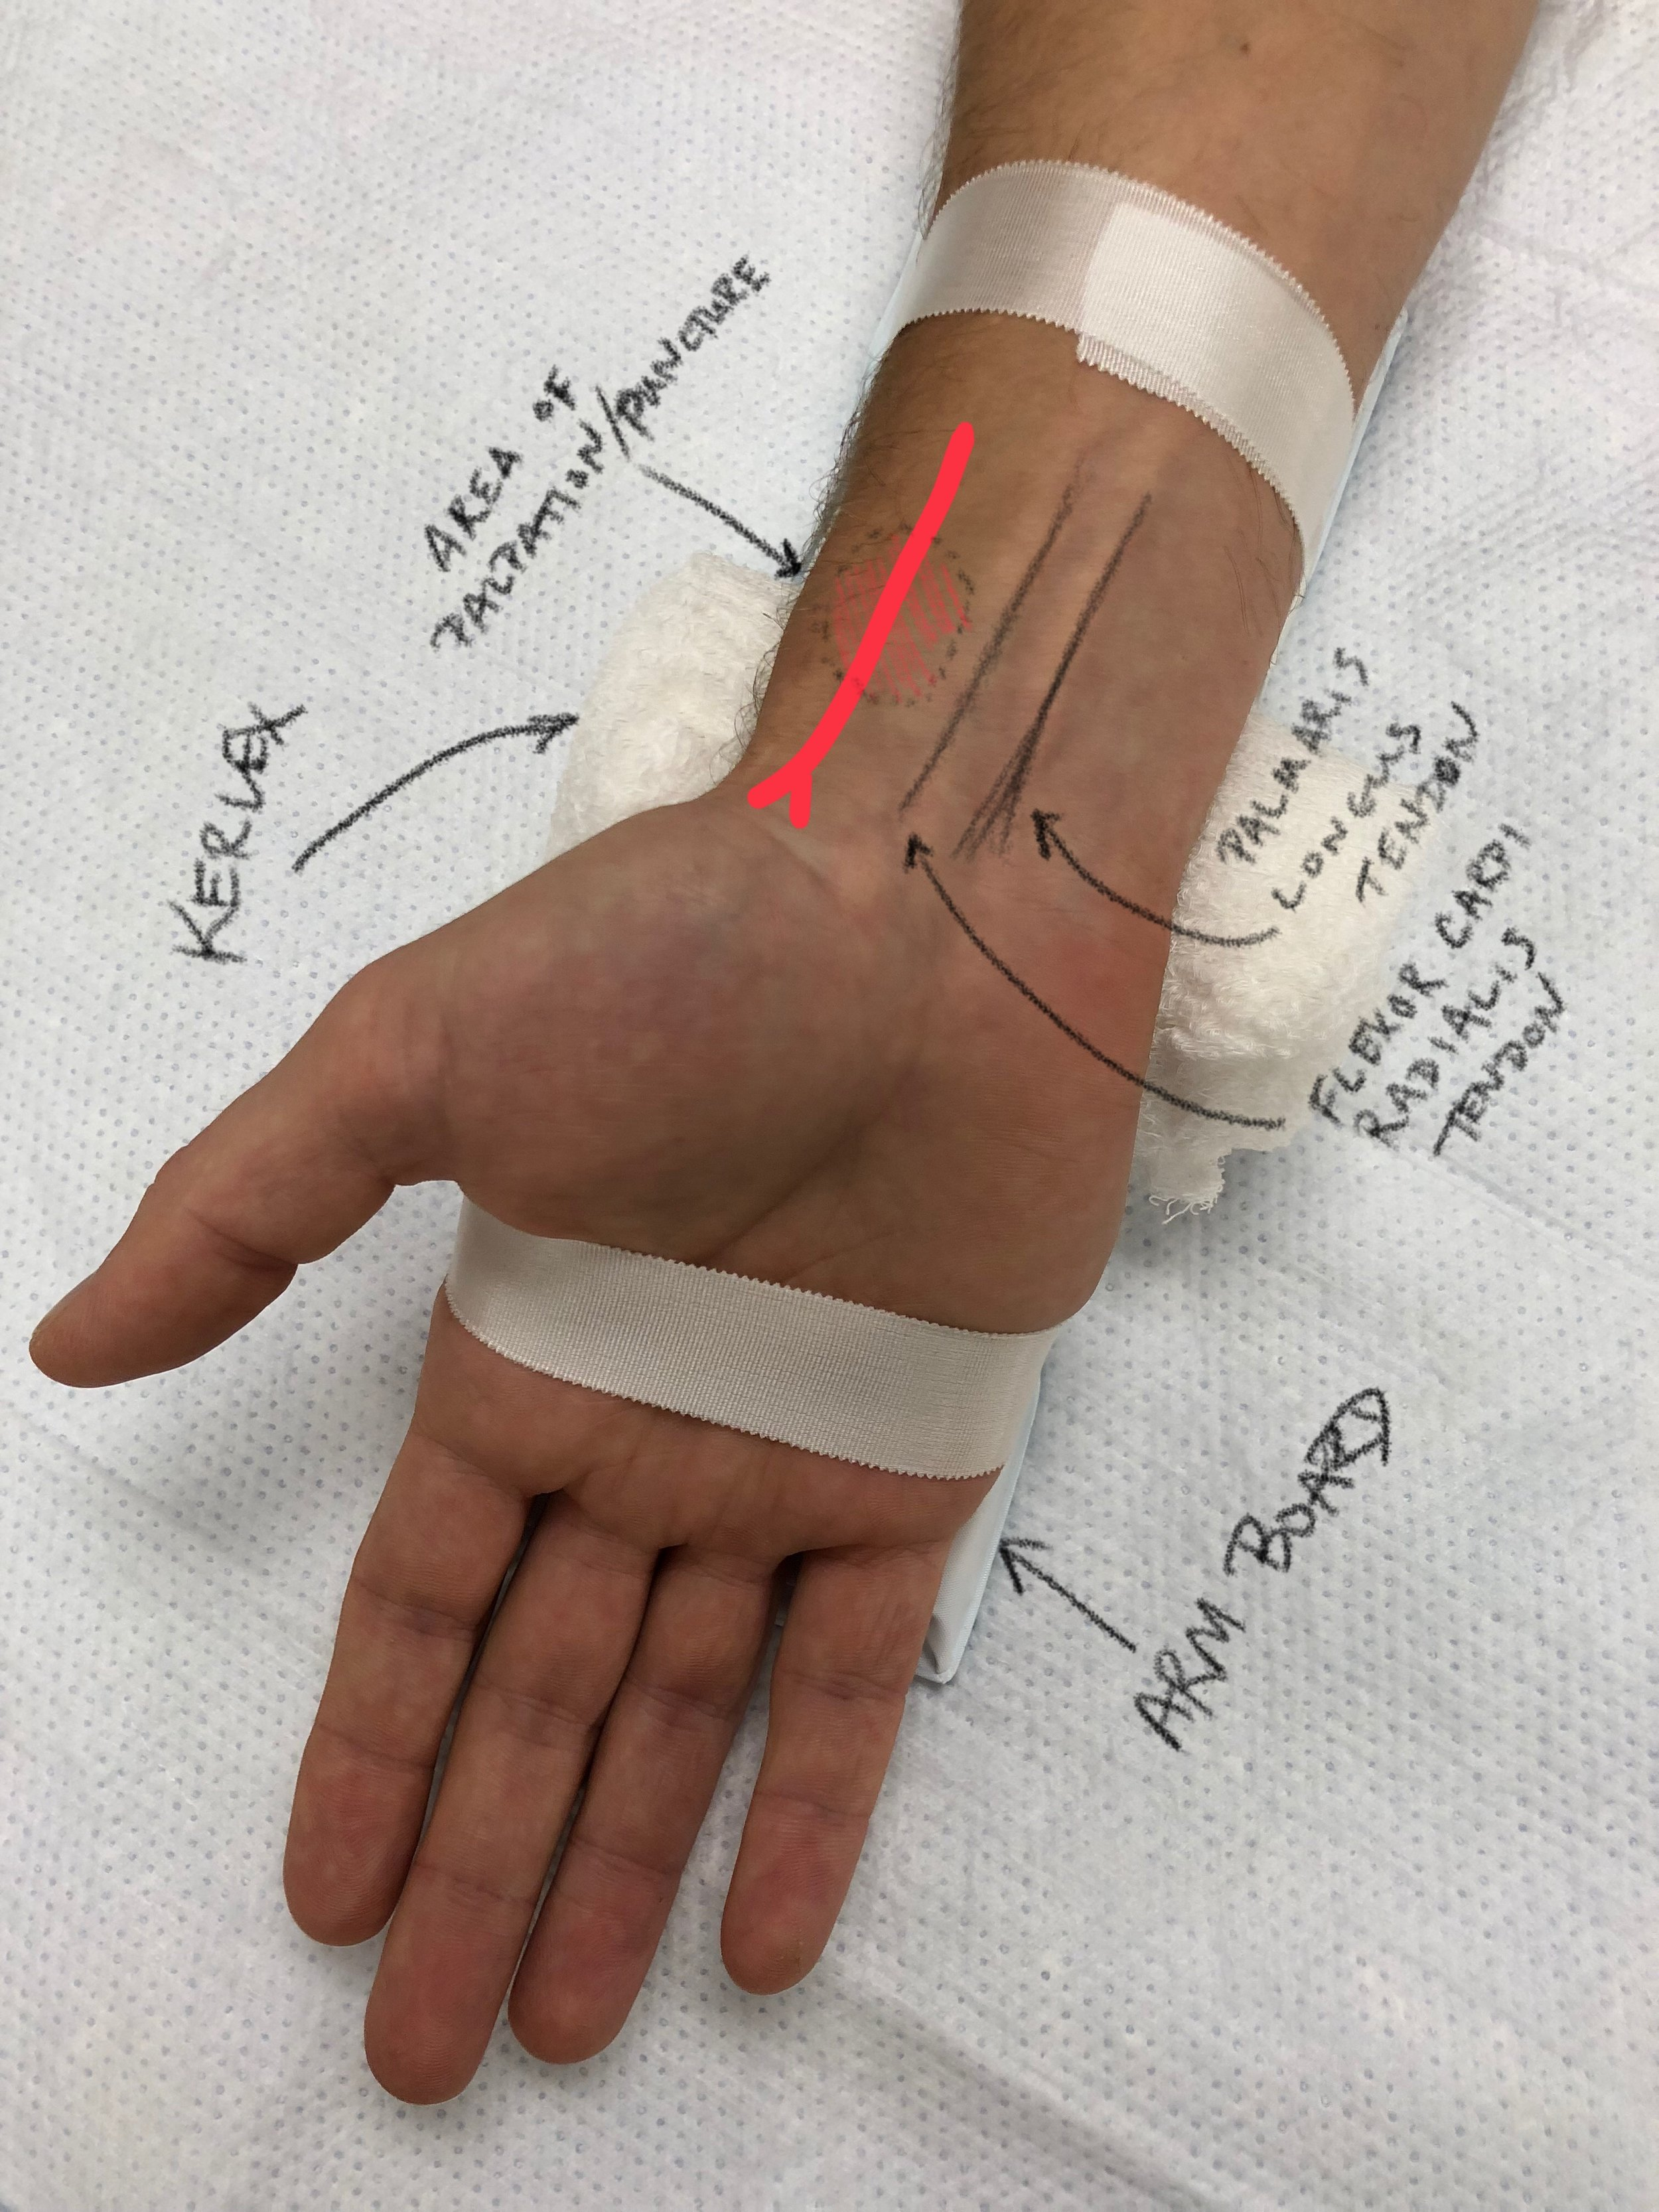 Figure 1: Set Up and Anatomy for Radial Arterial Line Placement - Short Arm Board, Kerlex, and Tape are used to Secure the Patients wrist during and following the procedure.